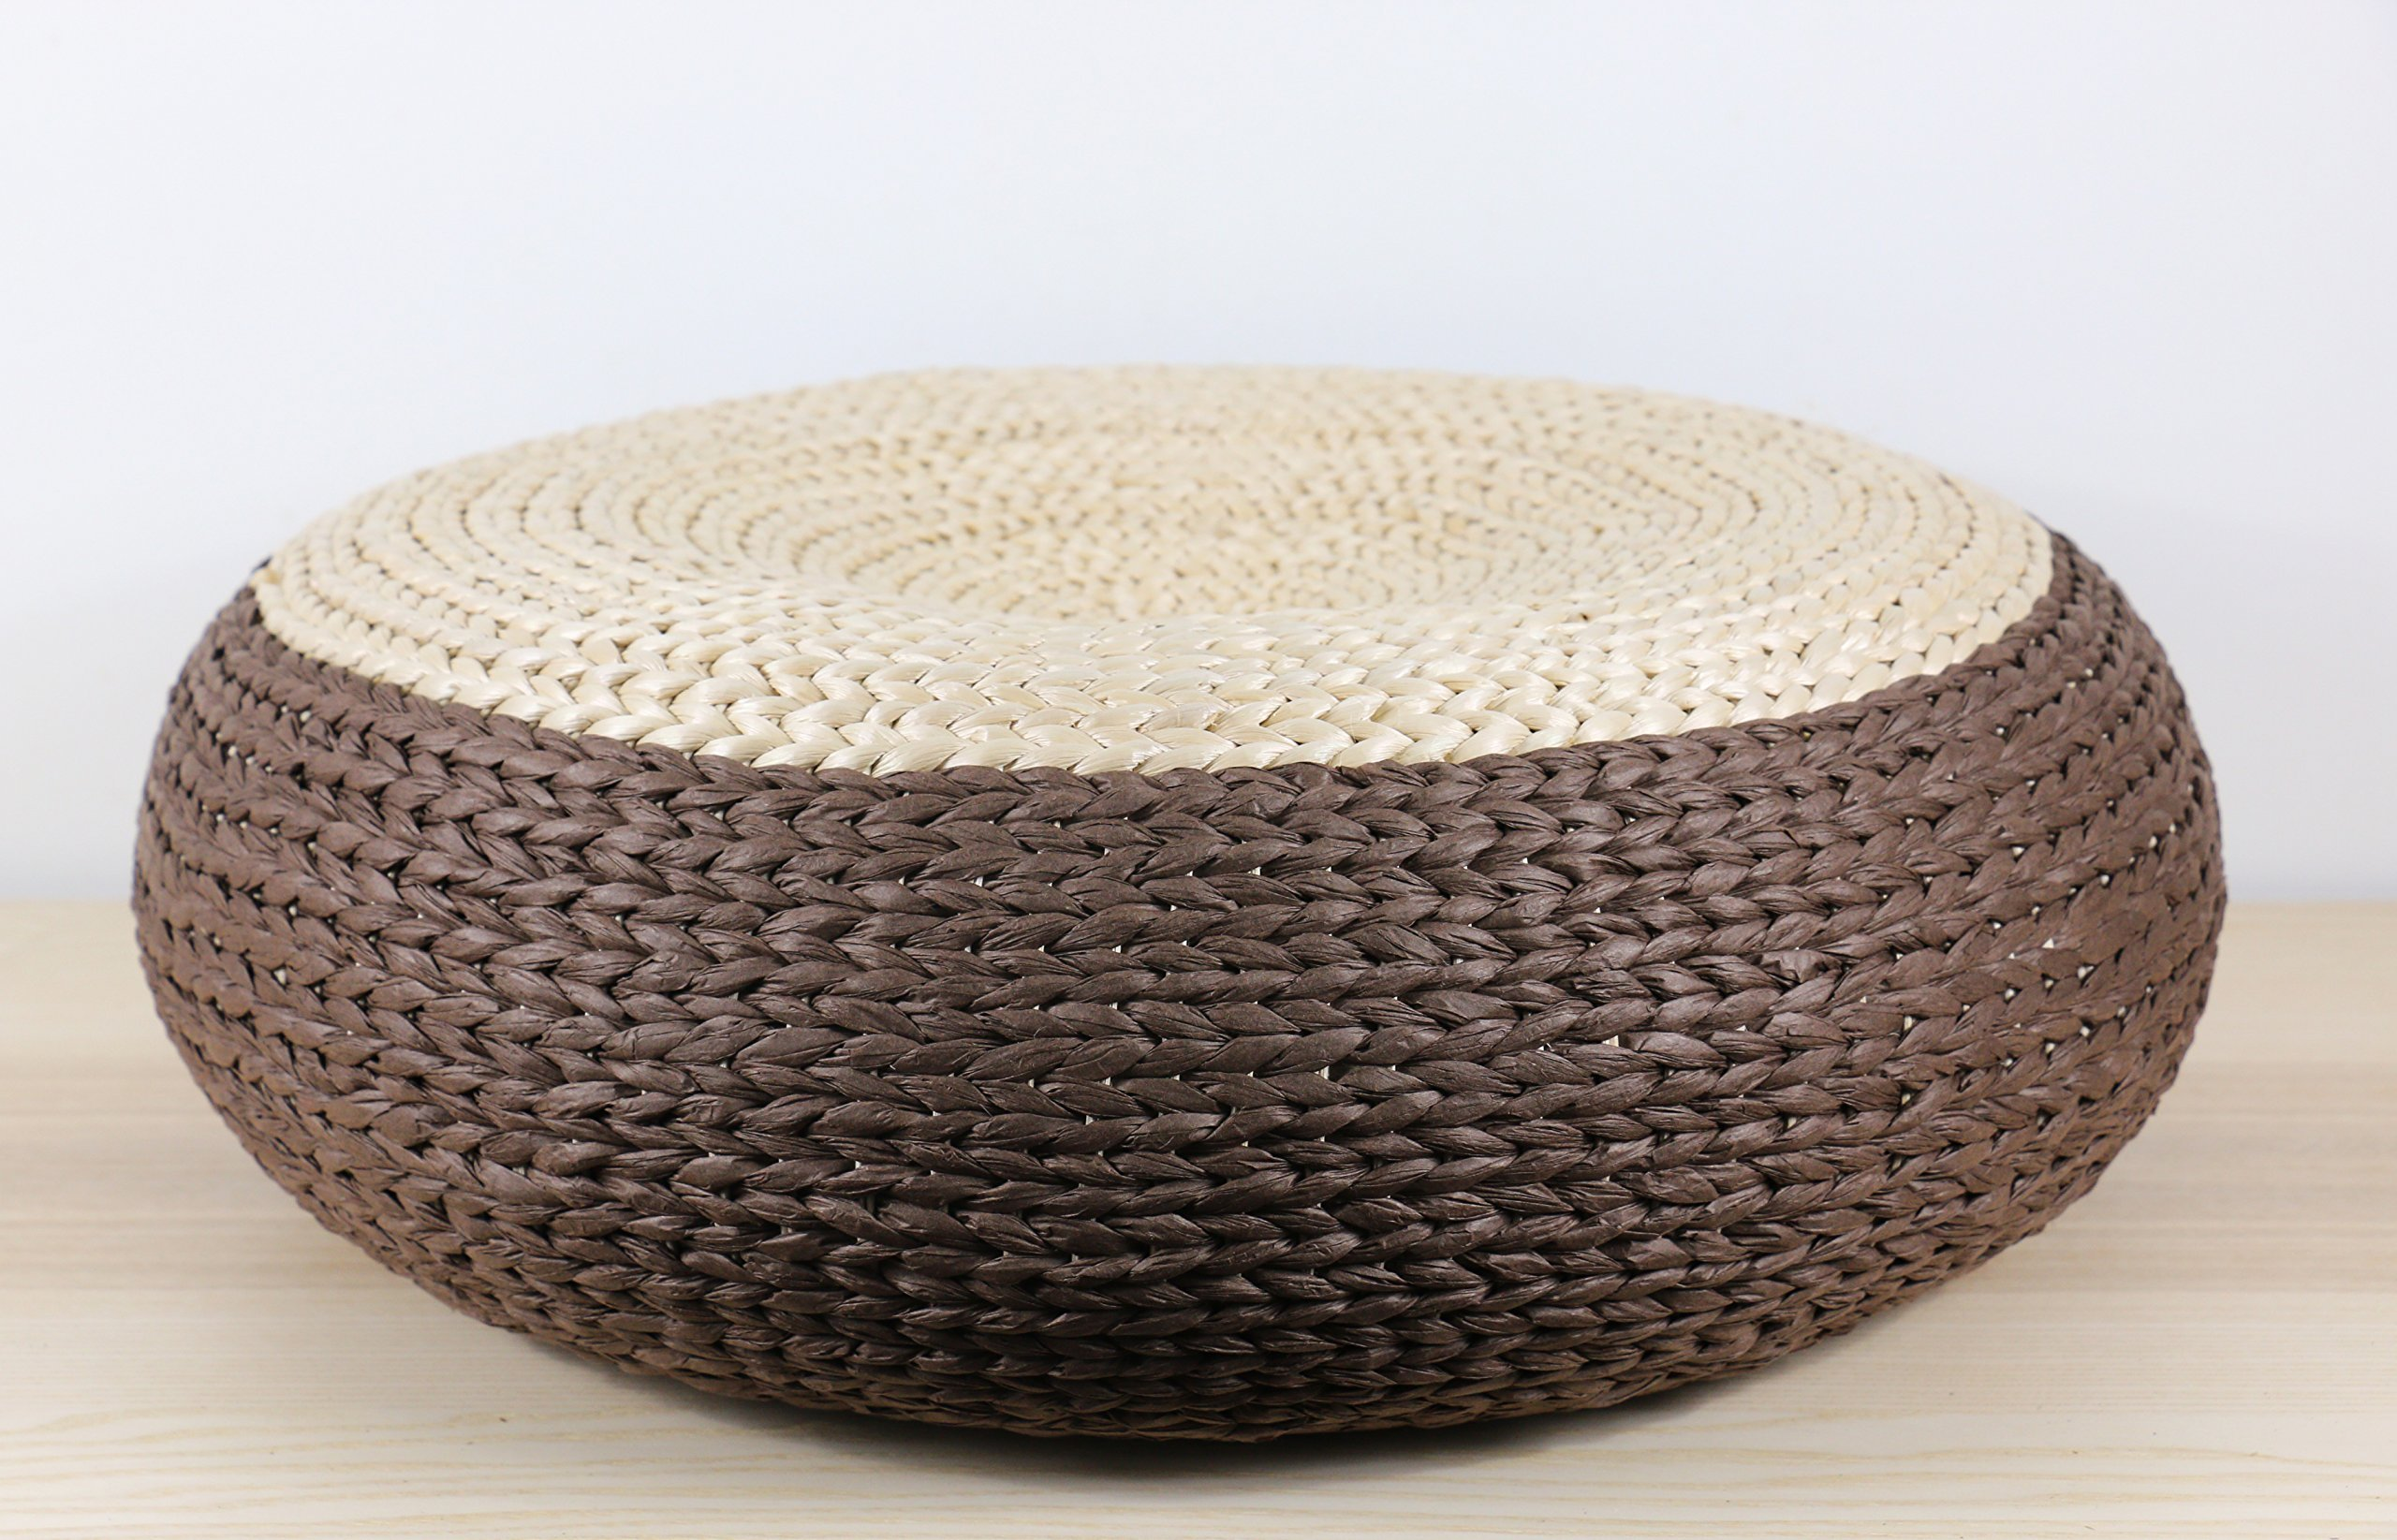 Doubled colored solid brown straw rustic poof/Floor cushion/Pouf ottoman/Kids gift/Wholesales bulk/meditation cushion